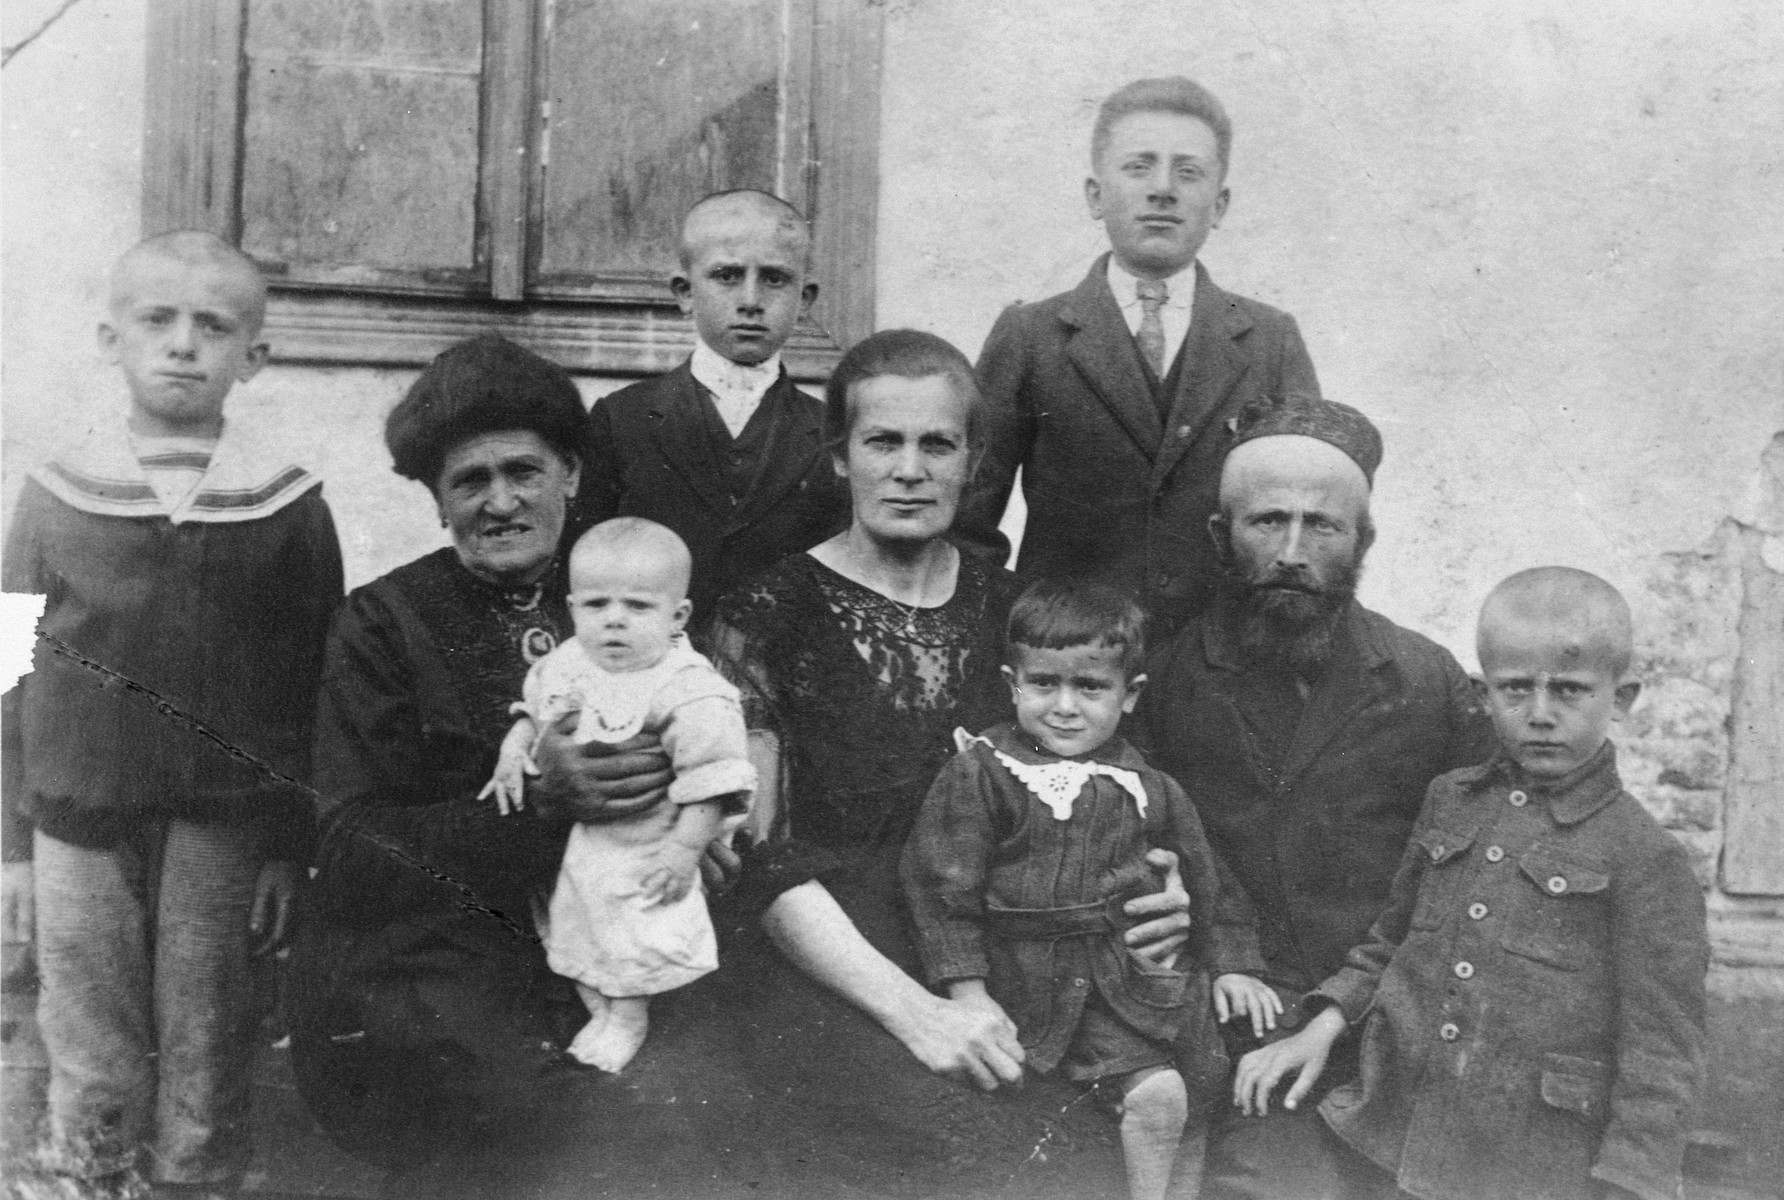 Portrait of a religious Jewish family in Lvov.  Pictured are Jakow and Szprinca Menaker and their chldren.  Ephraim is on his mother's lap, third from the right.